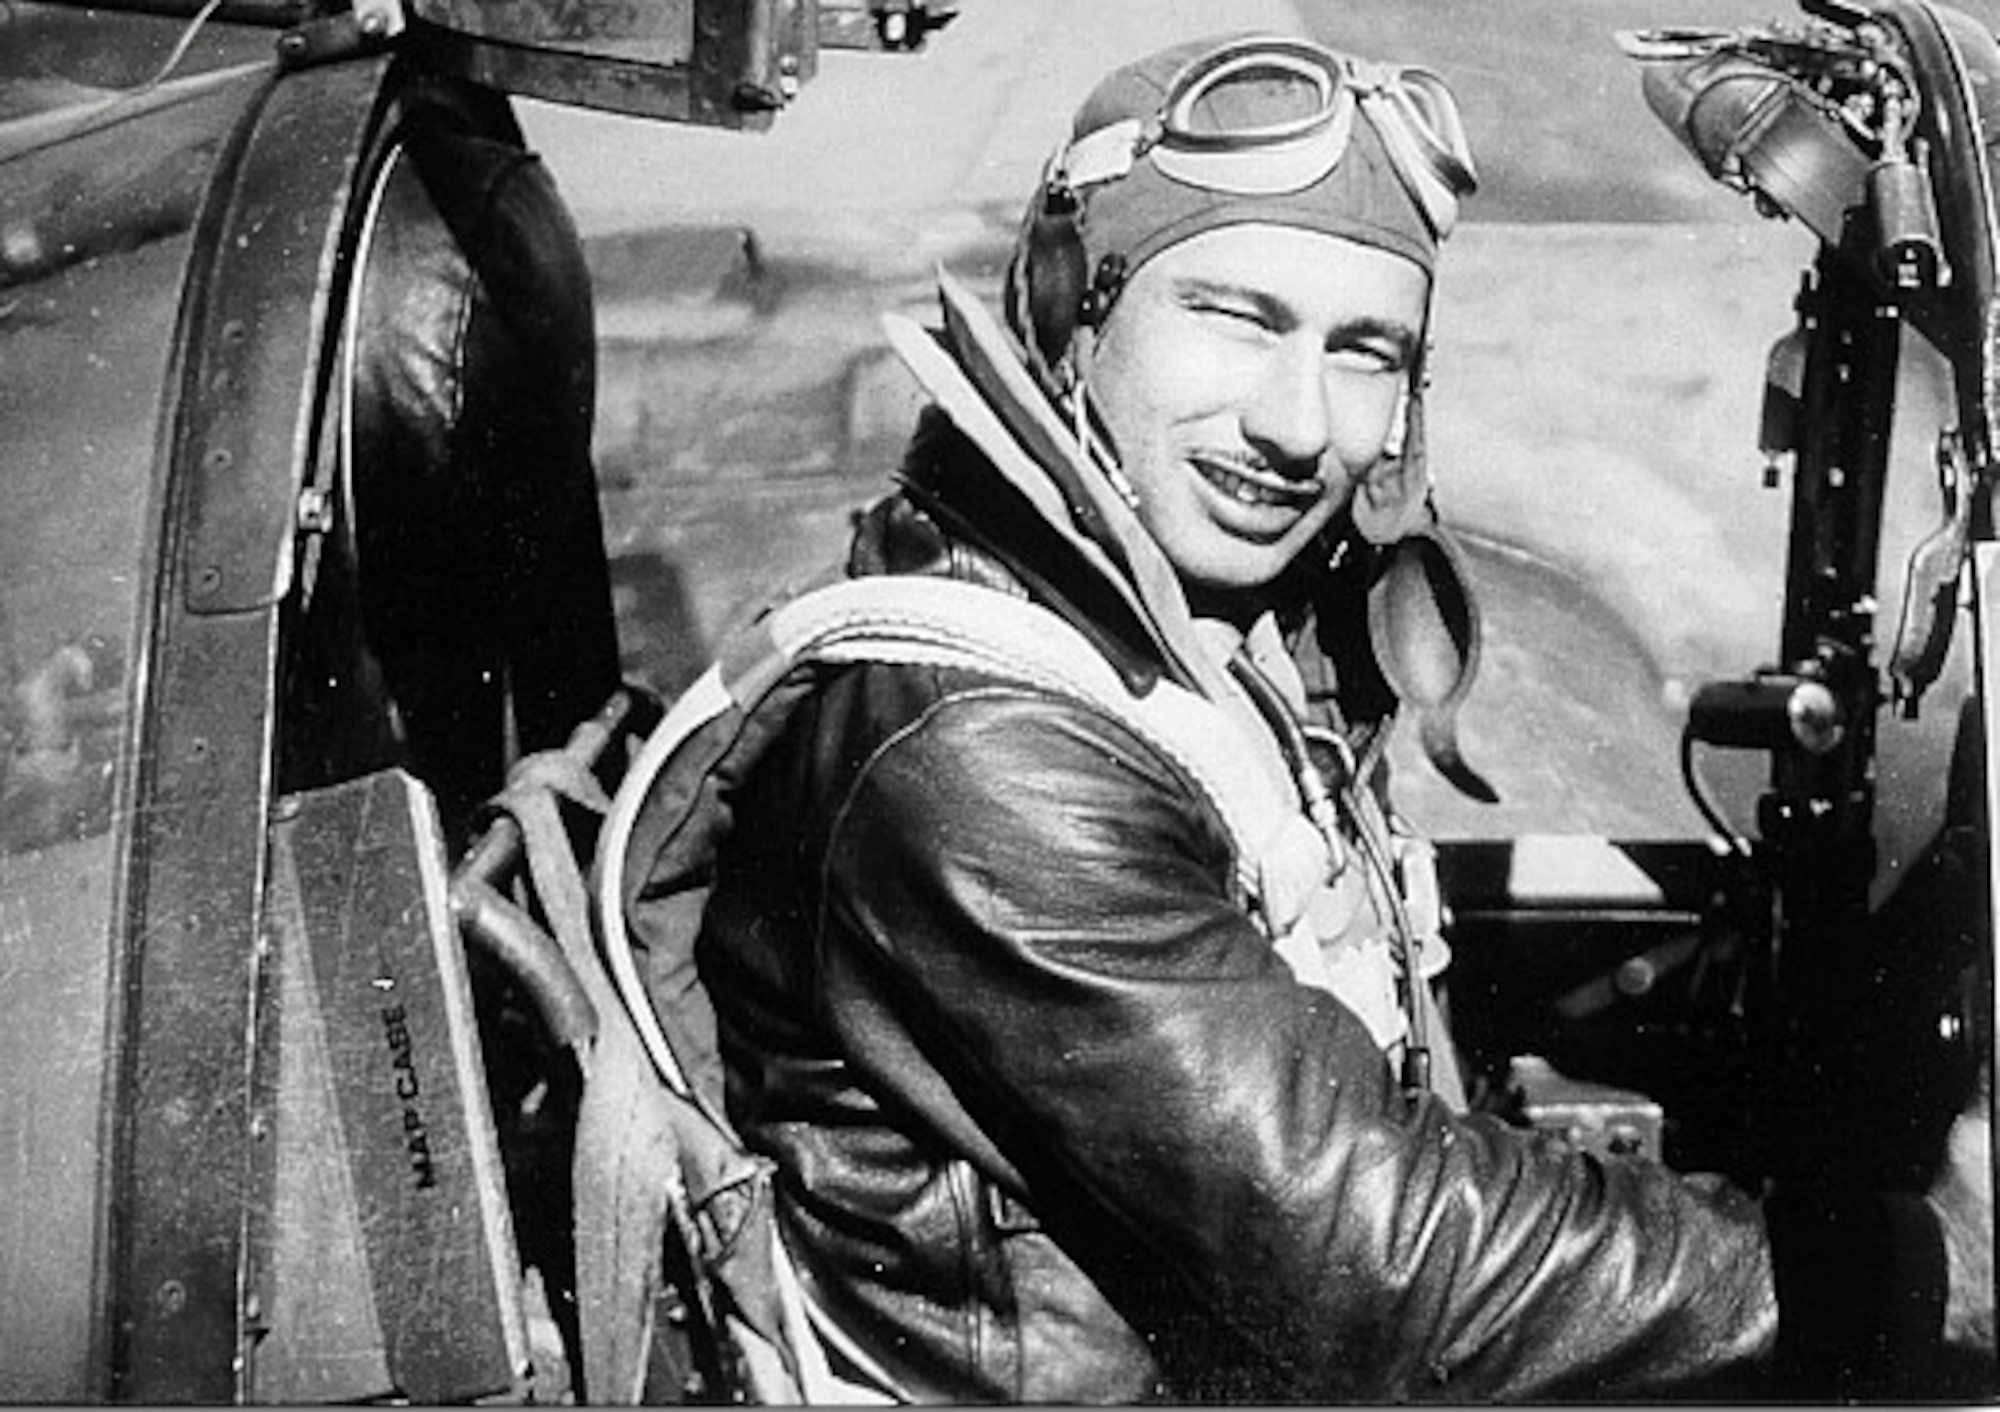 1940's -- First Lt. Carl Hoenshell poses in his P-38 Lightning during World War II.  He was declared killed in action in 1945, but his remains were not recovered until 2002.  His family buried him with full military honors in his hometown of Ossowa, Mich., on May 25.